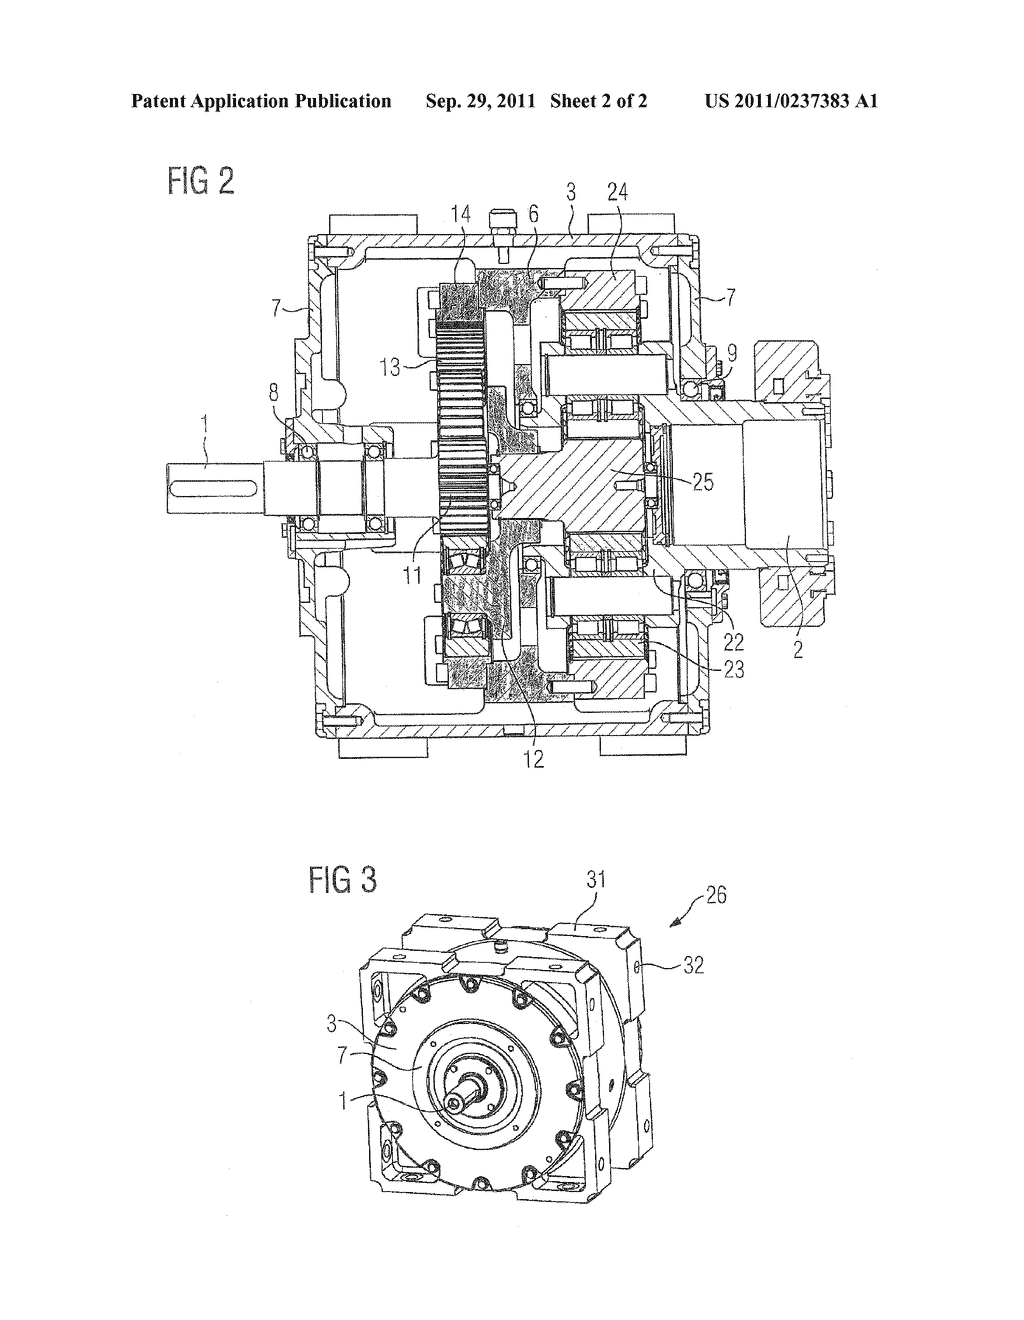 hight resolution of planetary gearbox diagram schematic and image 03 rh patentsencyclopedia com differential gear box schematic diagram schematic